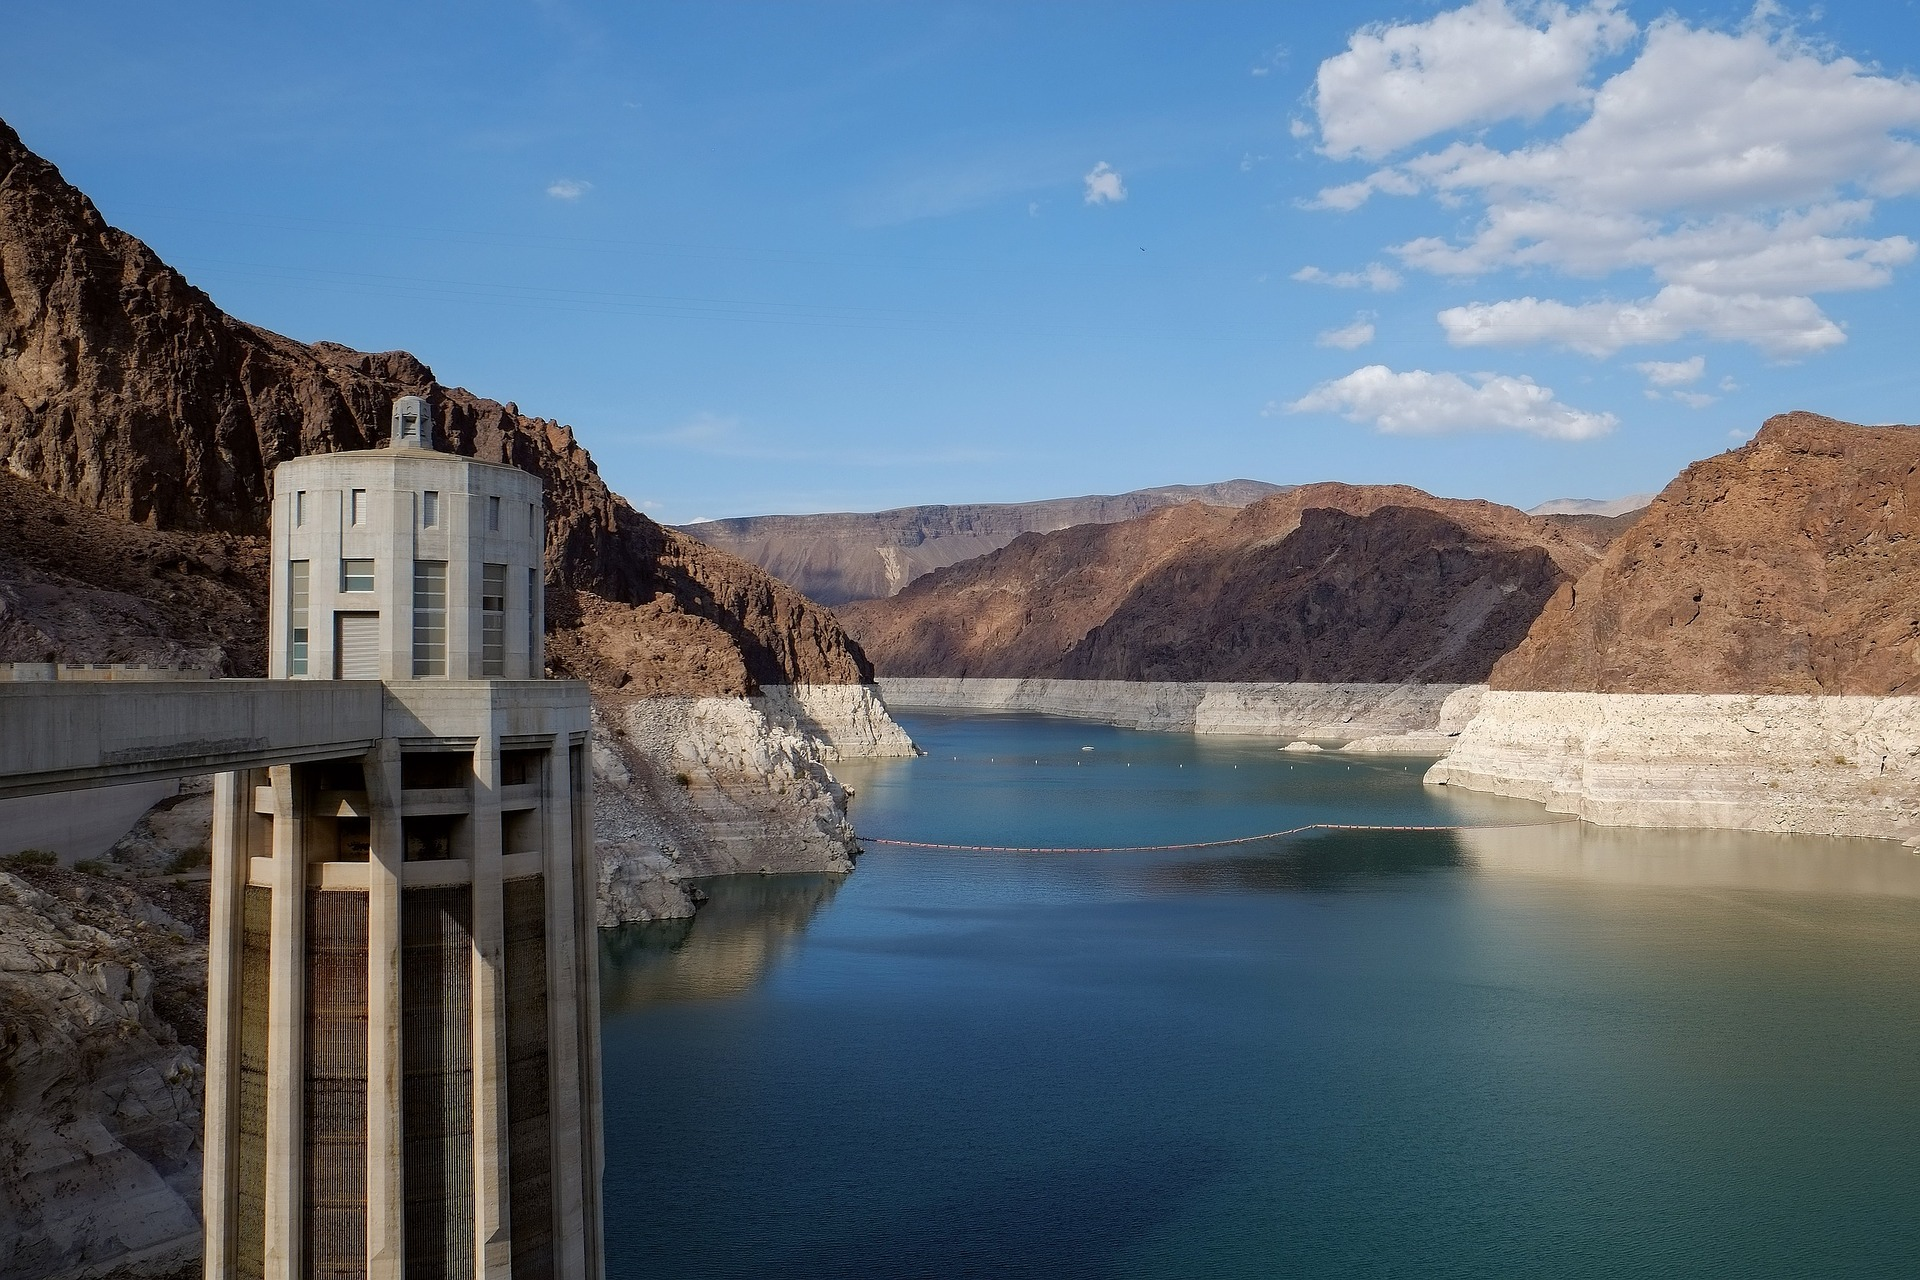 The Hoover Dam, USA